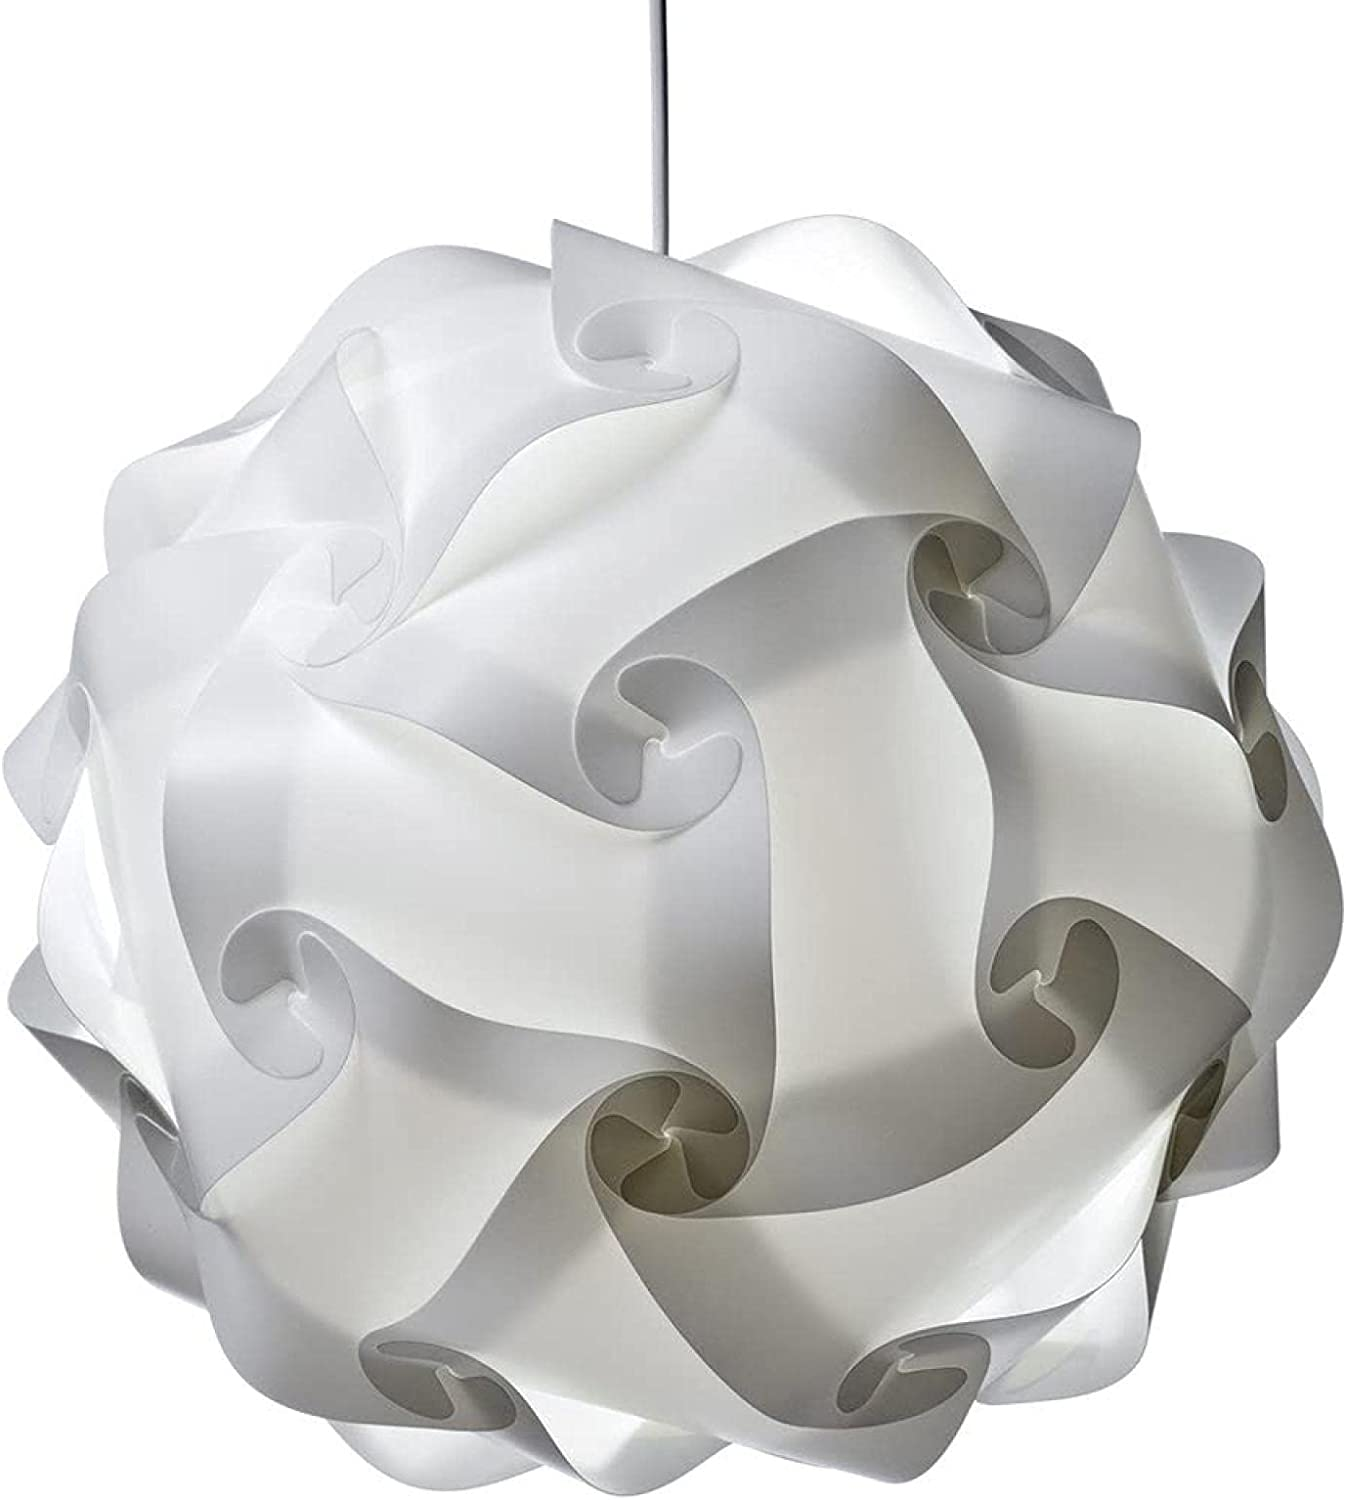 Lampshade Lamp-Chimney Lamp-House Lantern Puzzle Creative Modern Direct store Many popular brands